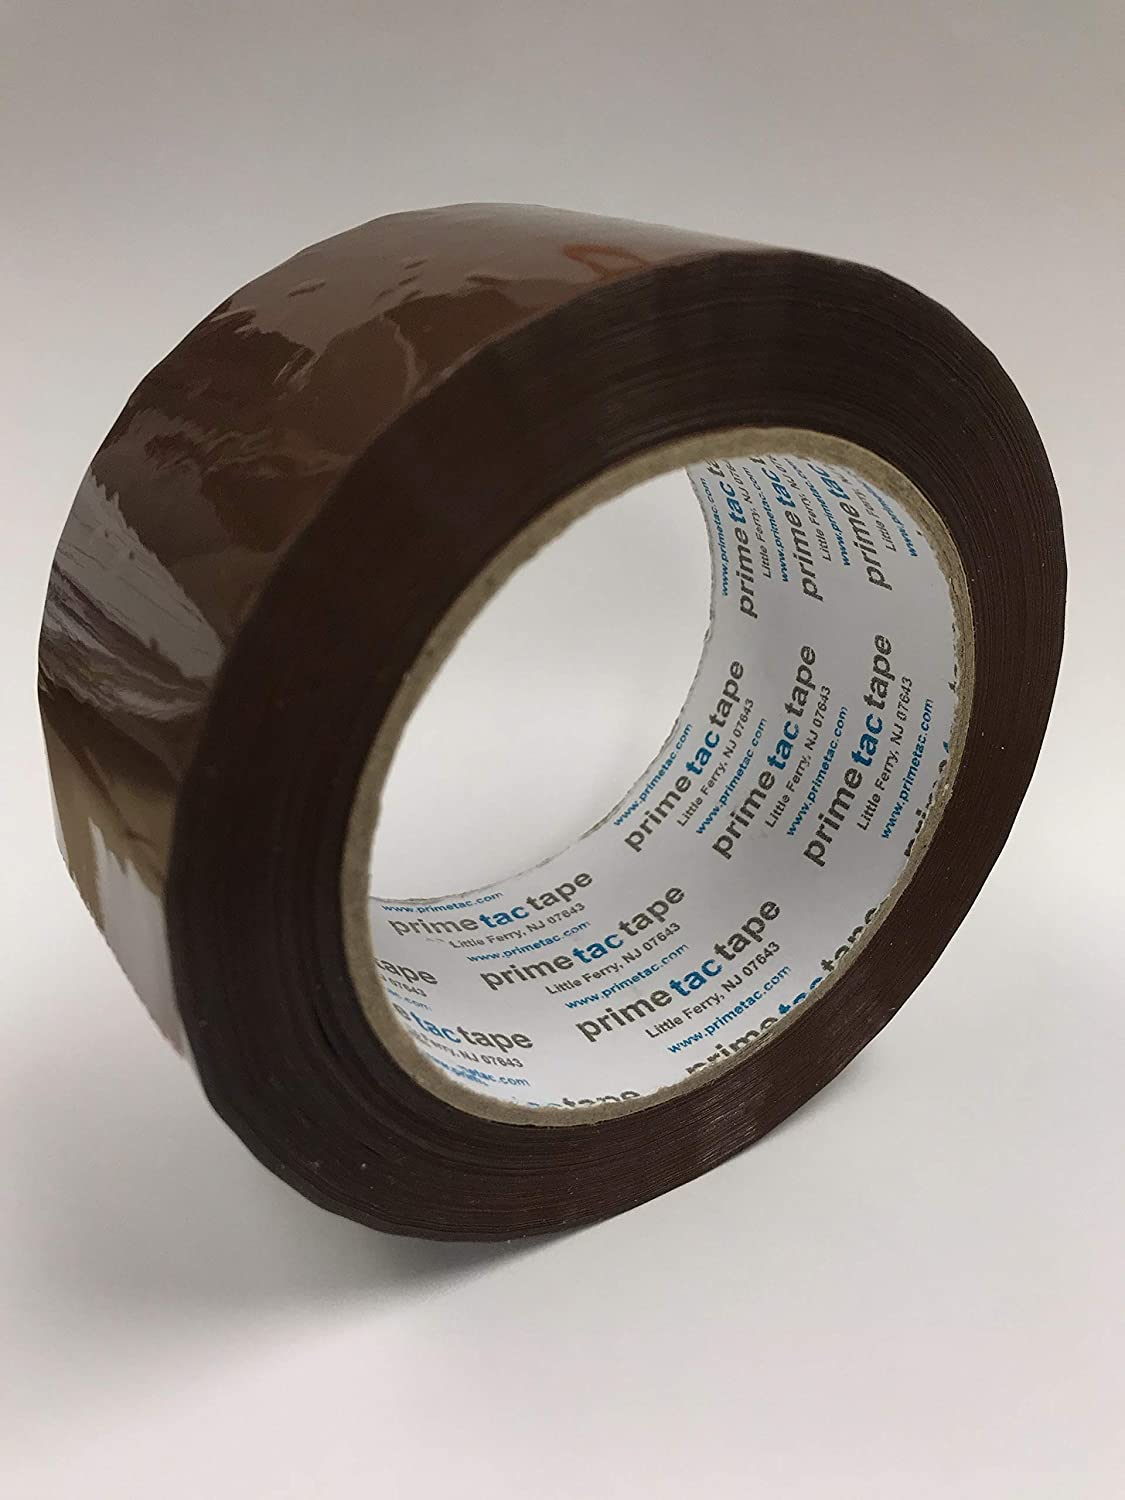 Primetac 401 2x110 CL Clear Acrylic Carton Sealing Tape 100 m Length 1.7 mil Thickness Pack of 36 Rolls 48 mm Width